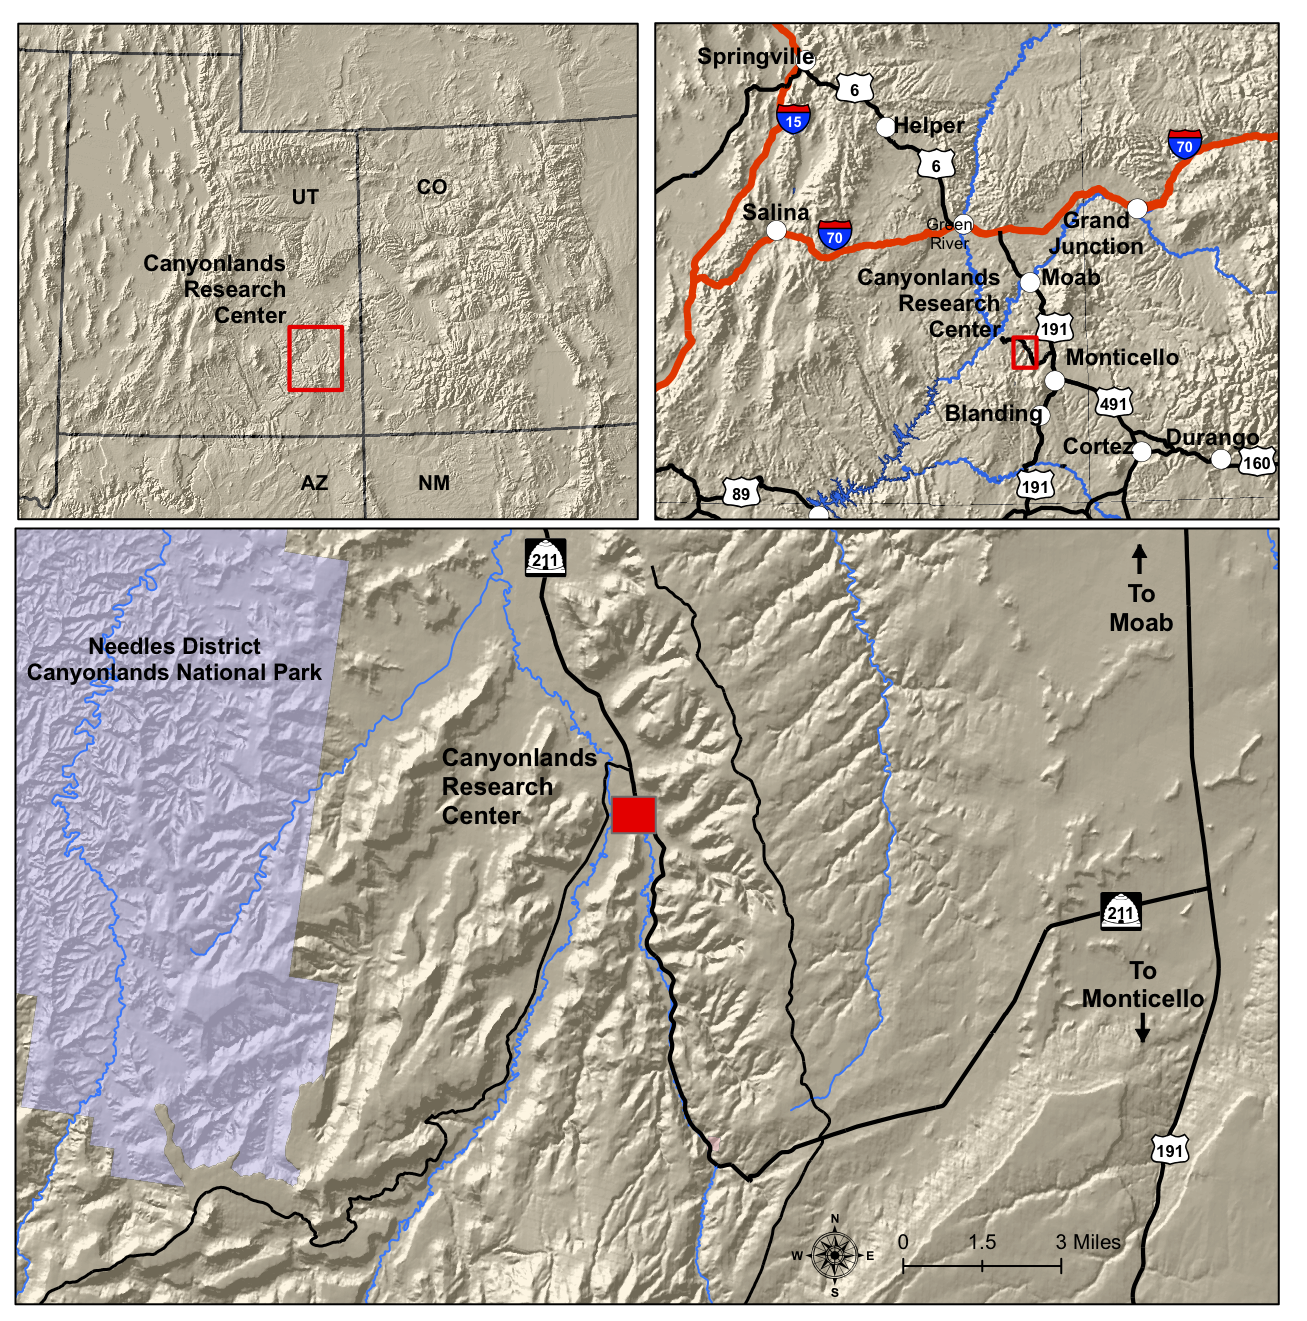 map directions for driving to Canyonlands Research Center